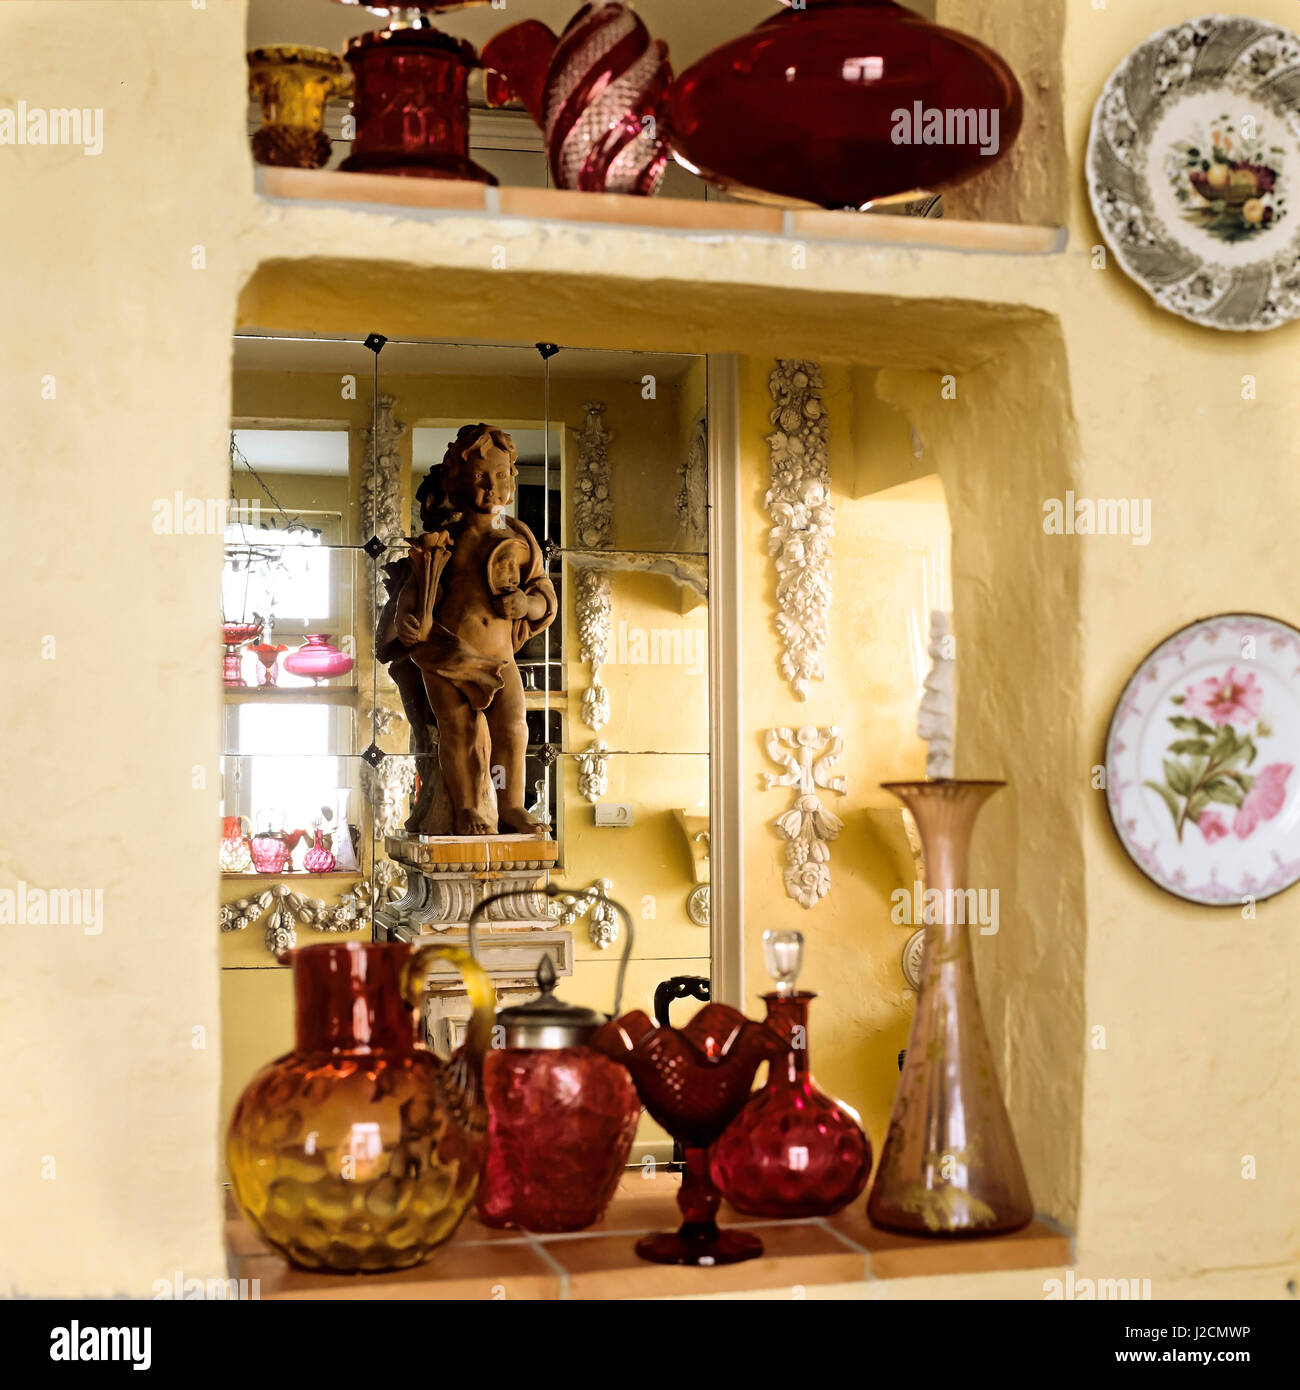 Yellow shelves with red vases. - Stock Image